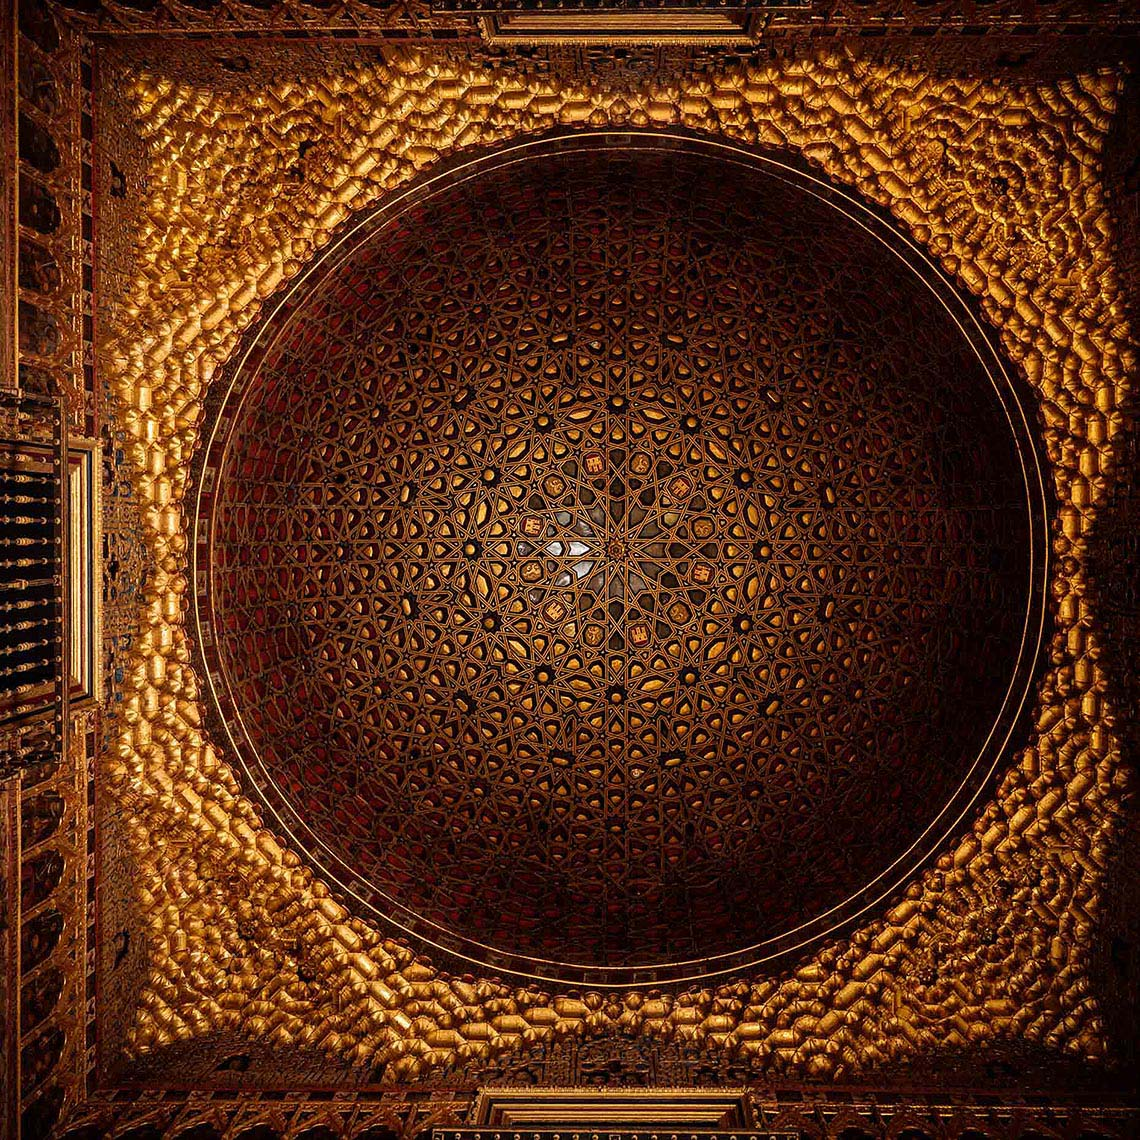 ornate-ceiling-royal-alcazar-palace-interior-architecture-seville-andalucia-spain